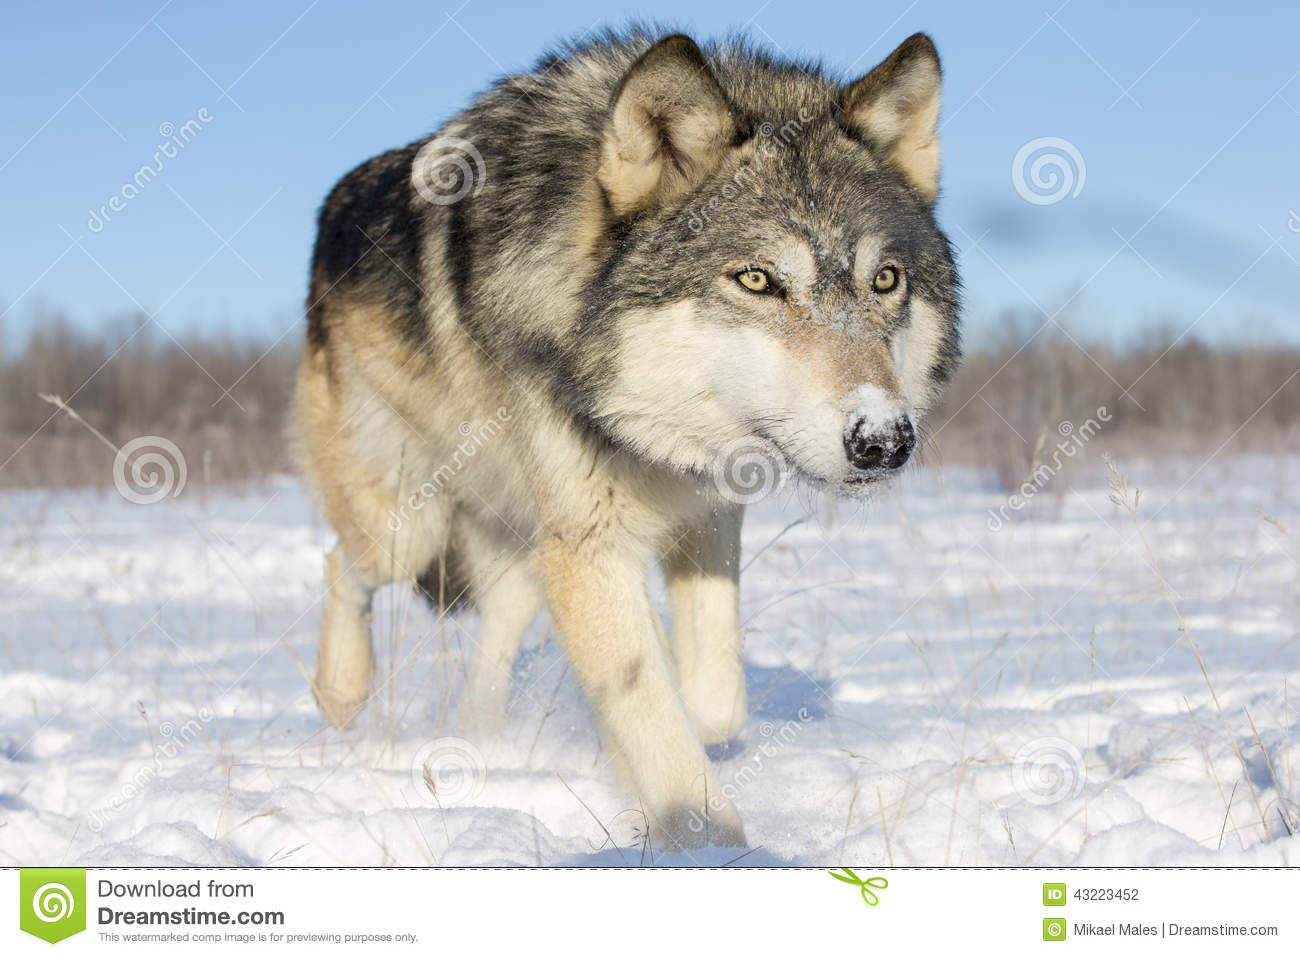 3d Ice Wolf Wallpaper Super Close Picture Of Timber Wolf In Snow Stock Photo